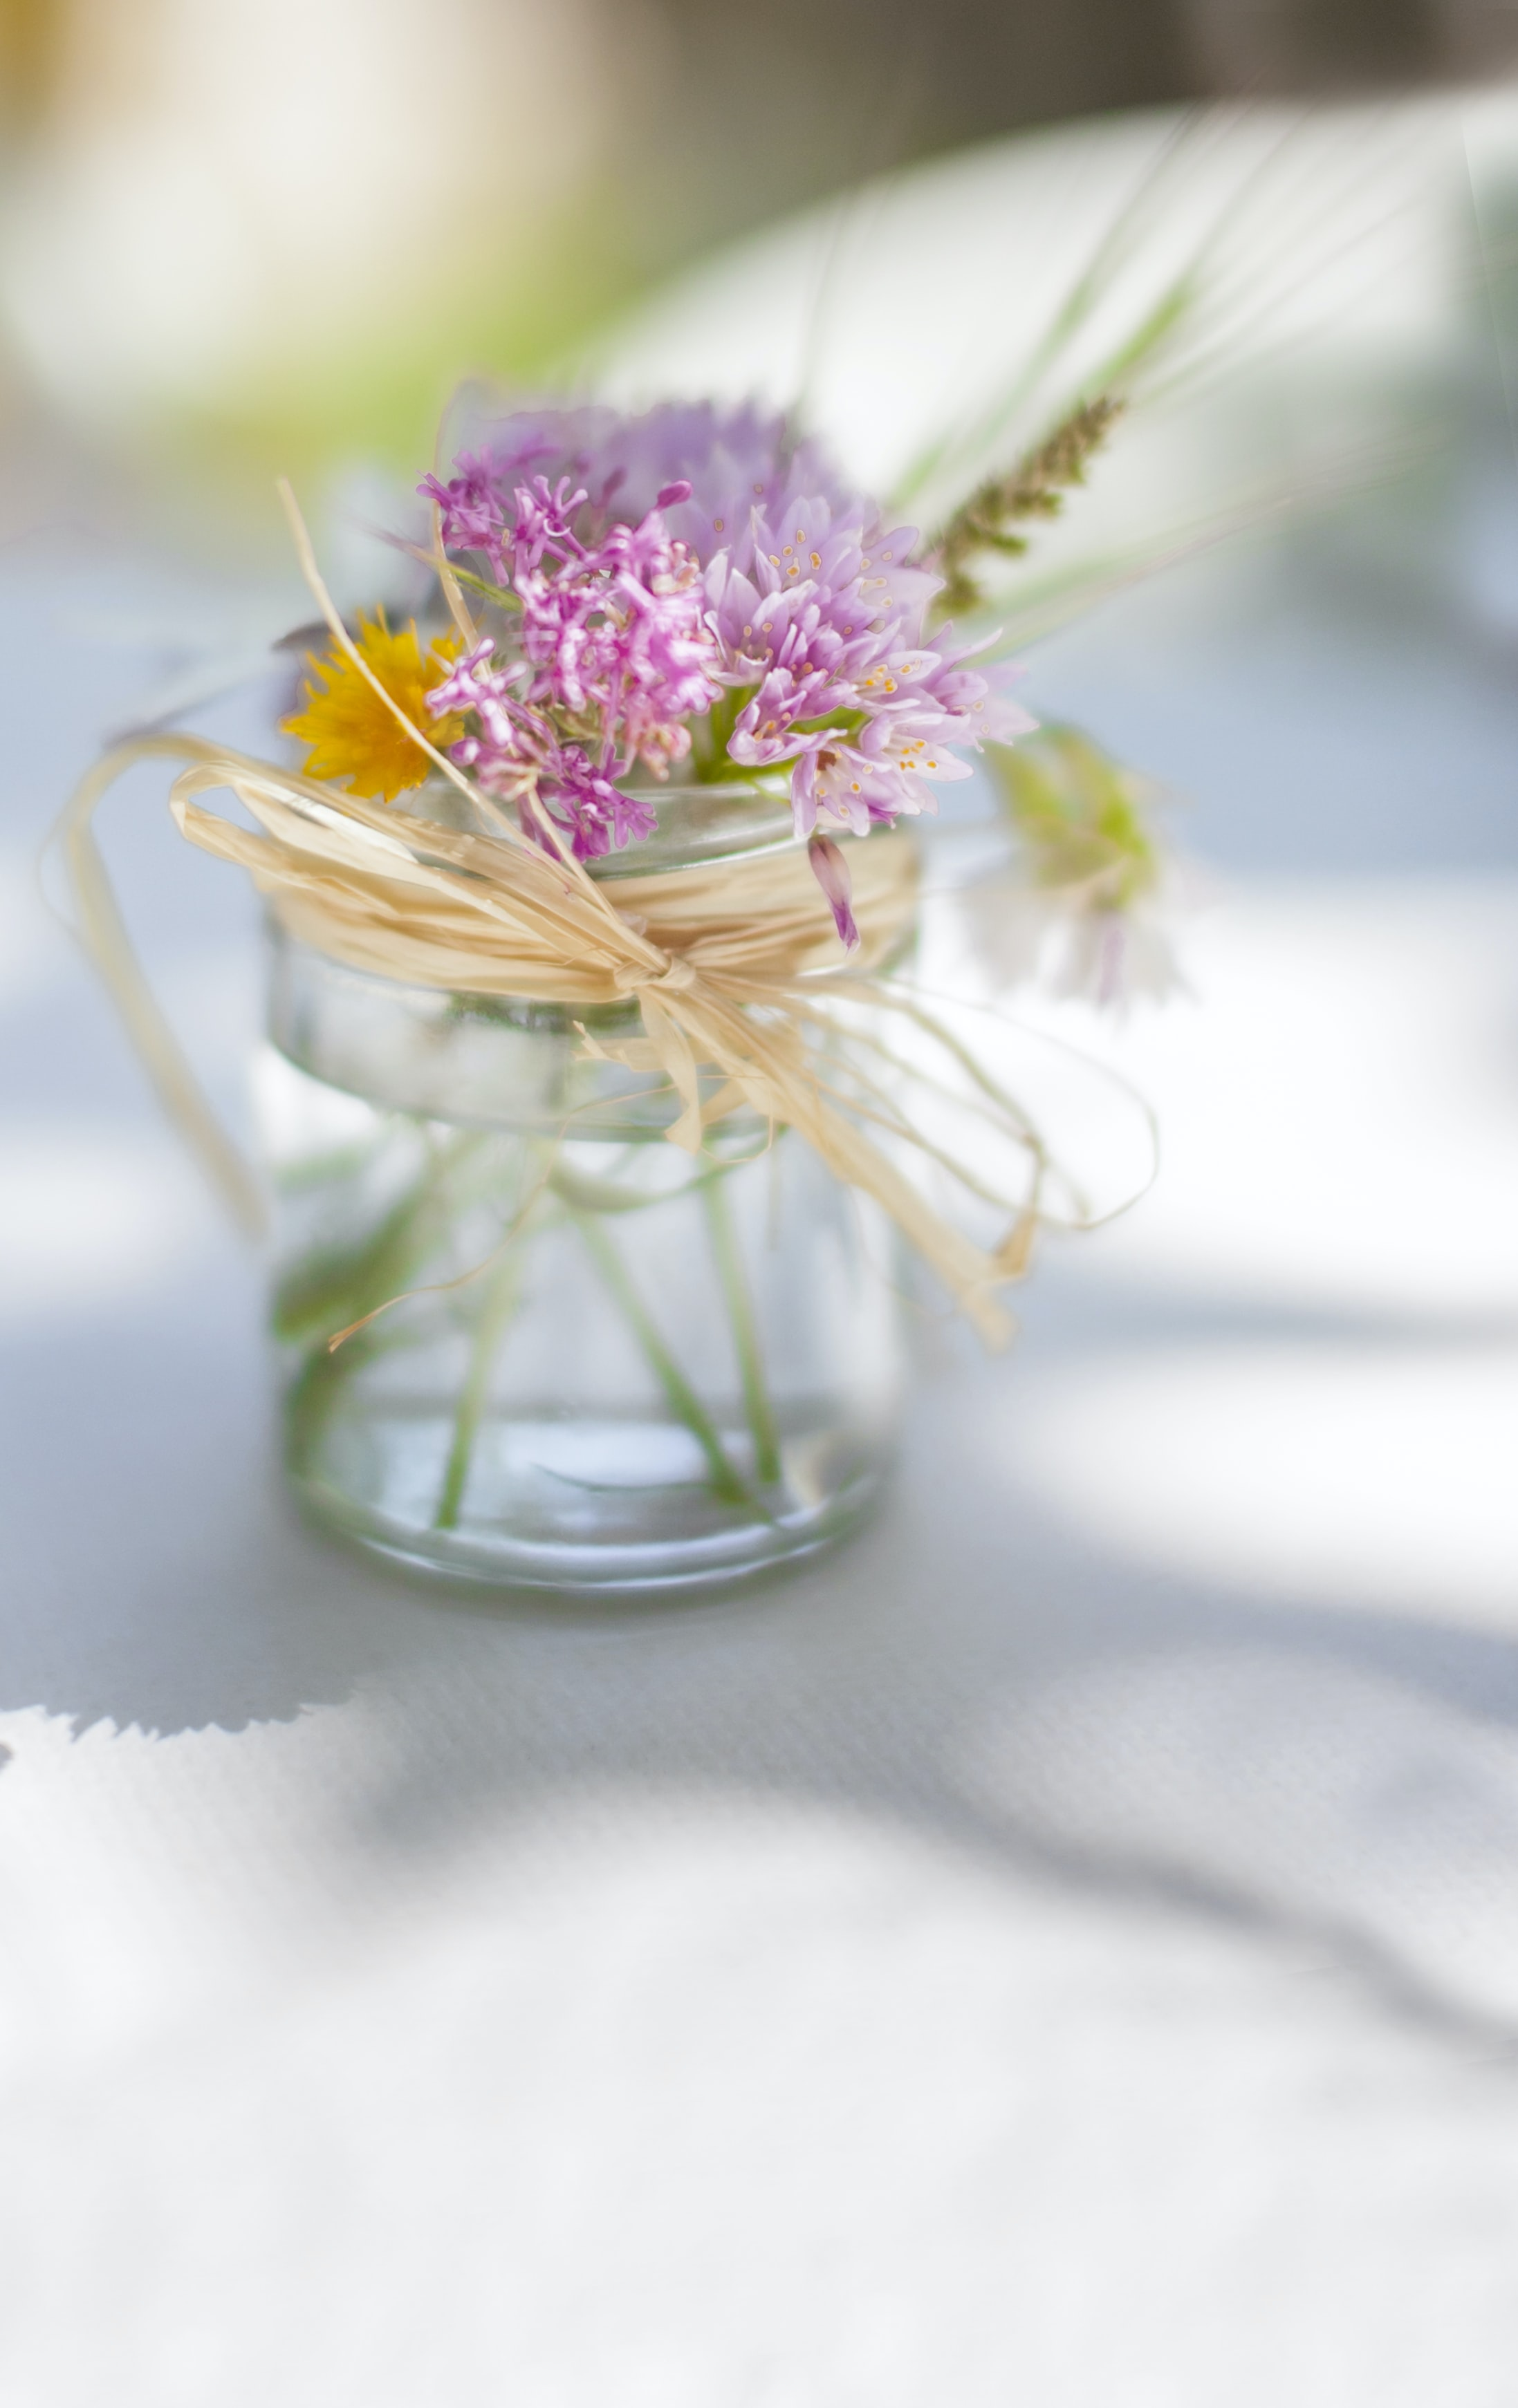 purple petaled flower with vase selective focus photography